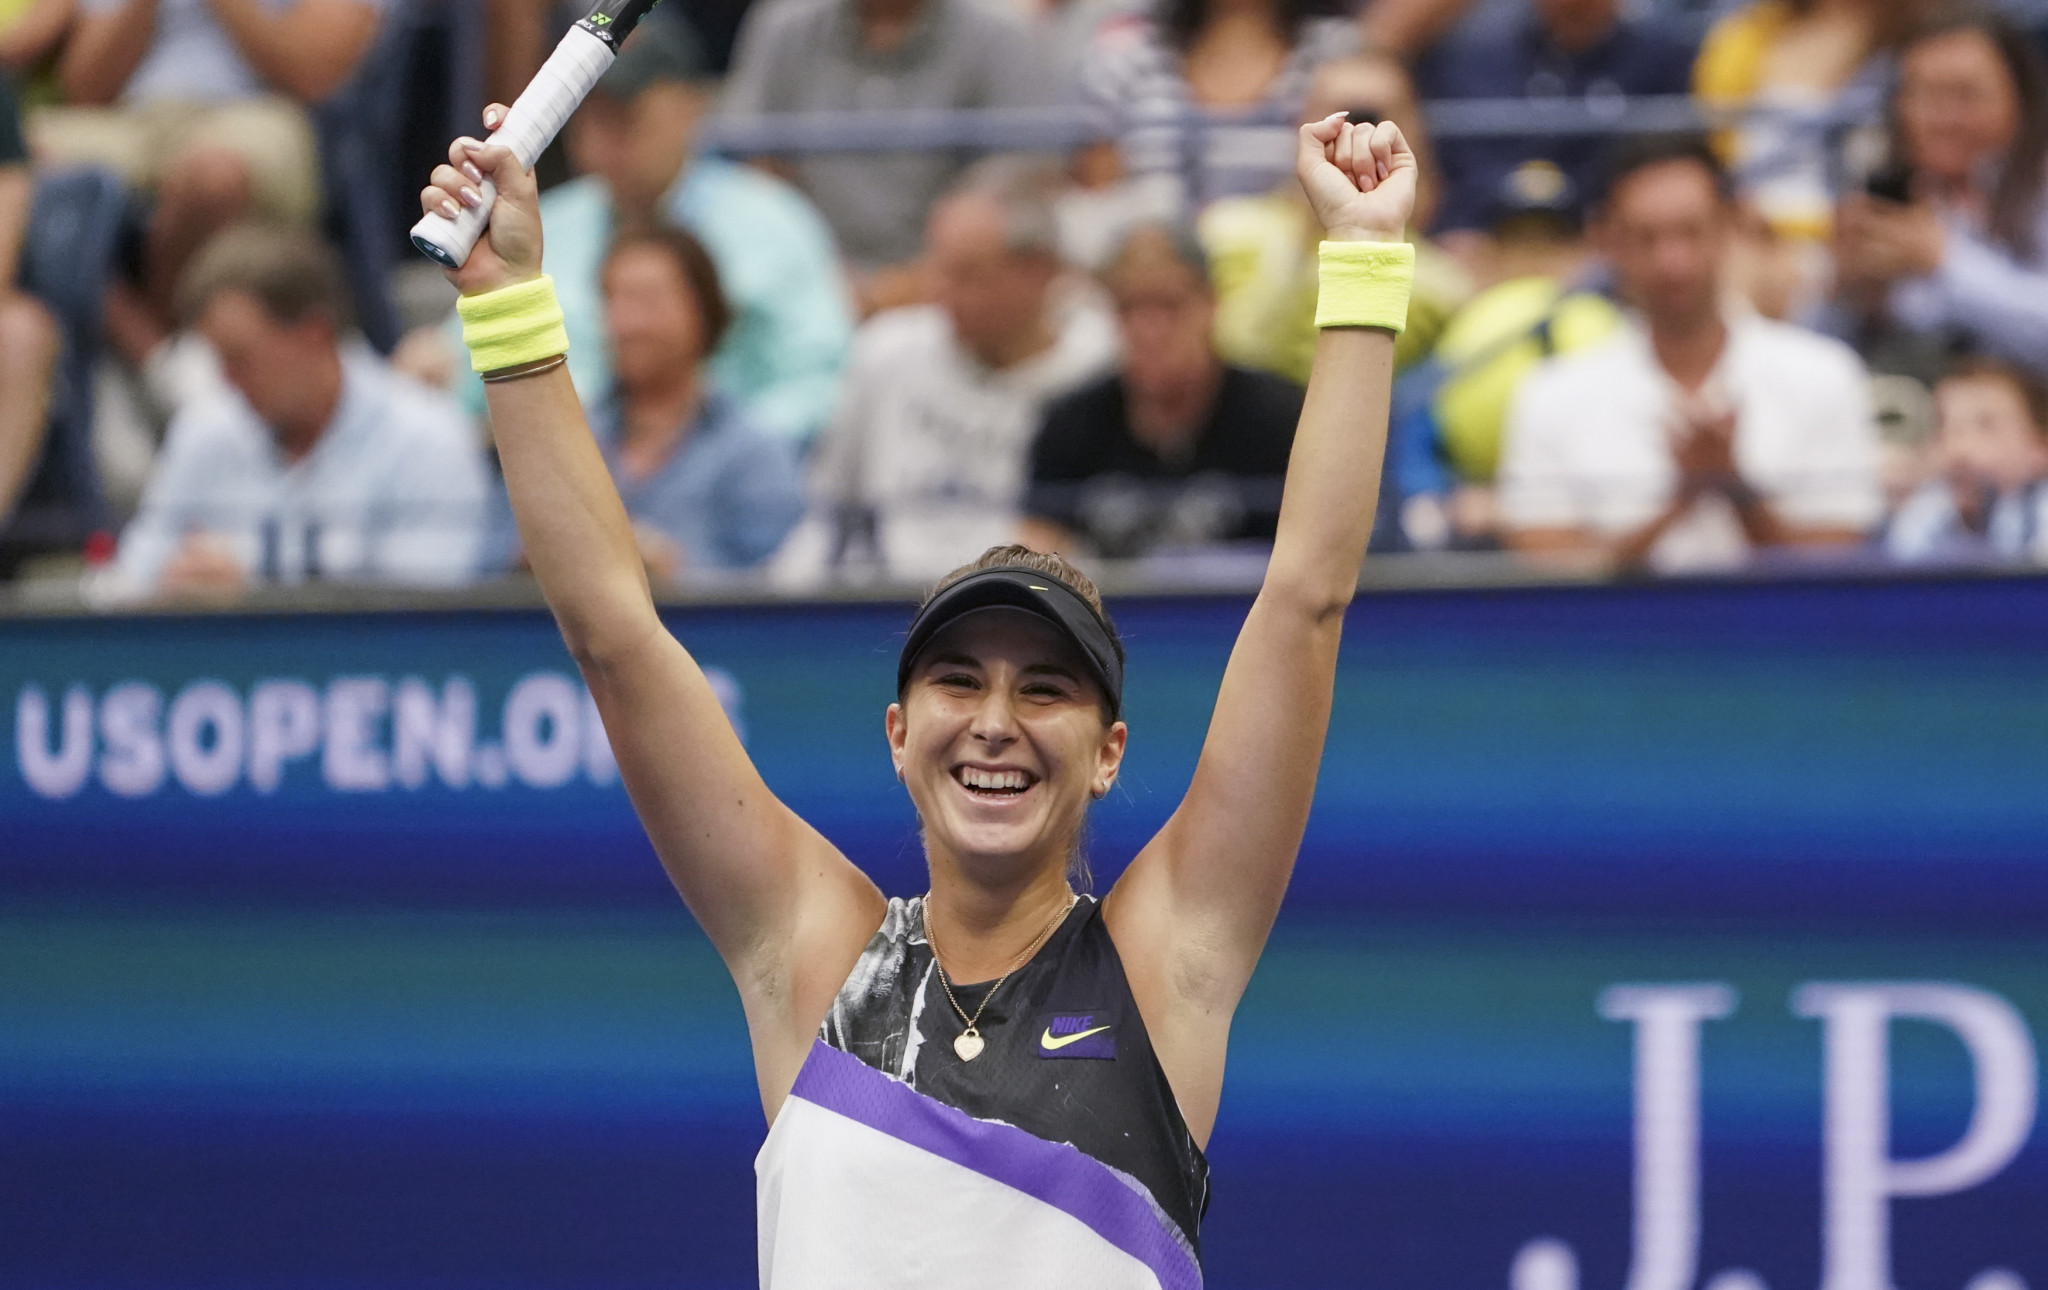 Reigning champion Osaka knocked out by Bencic at US Open